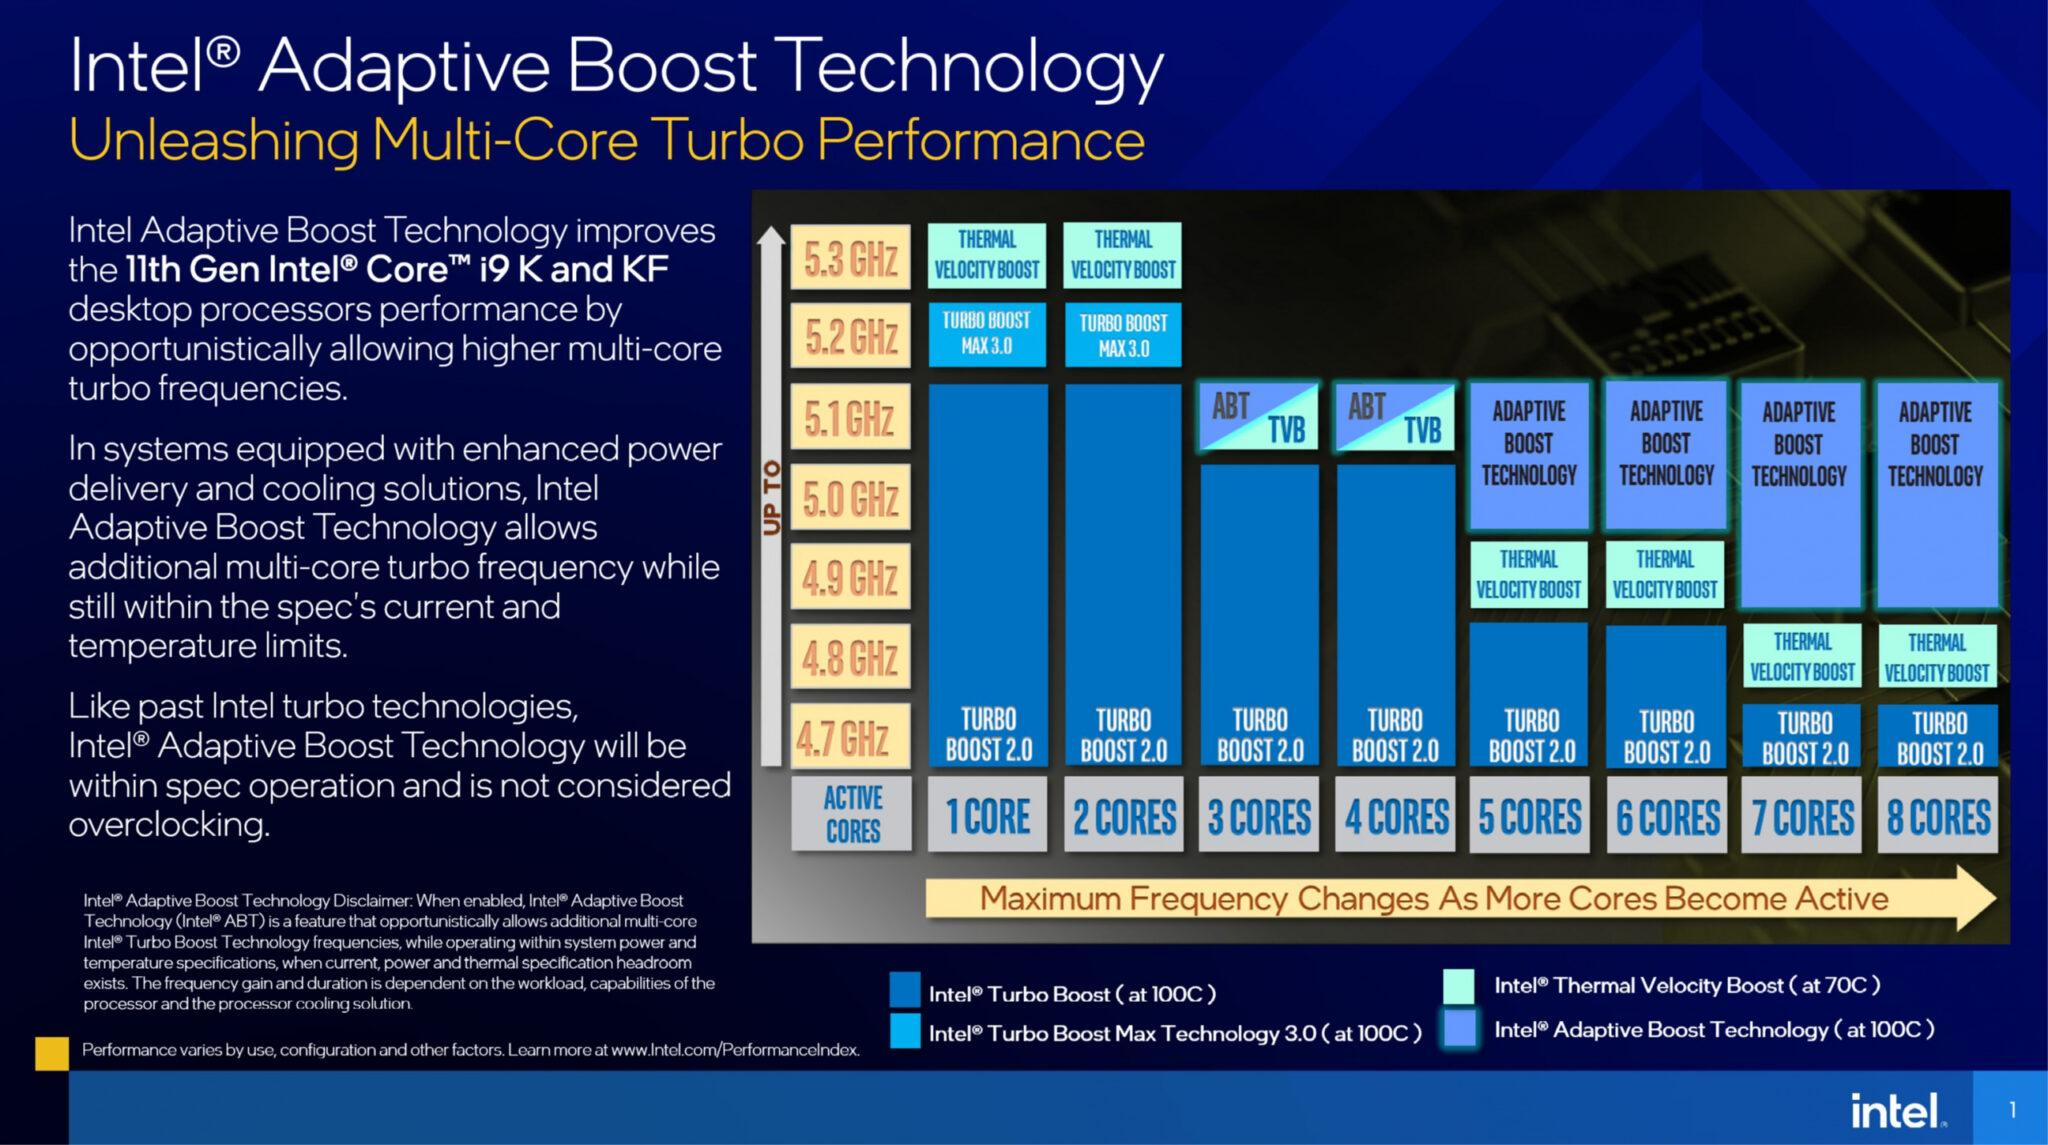 Adaptive Boost Technology